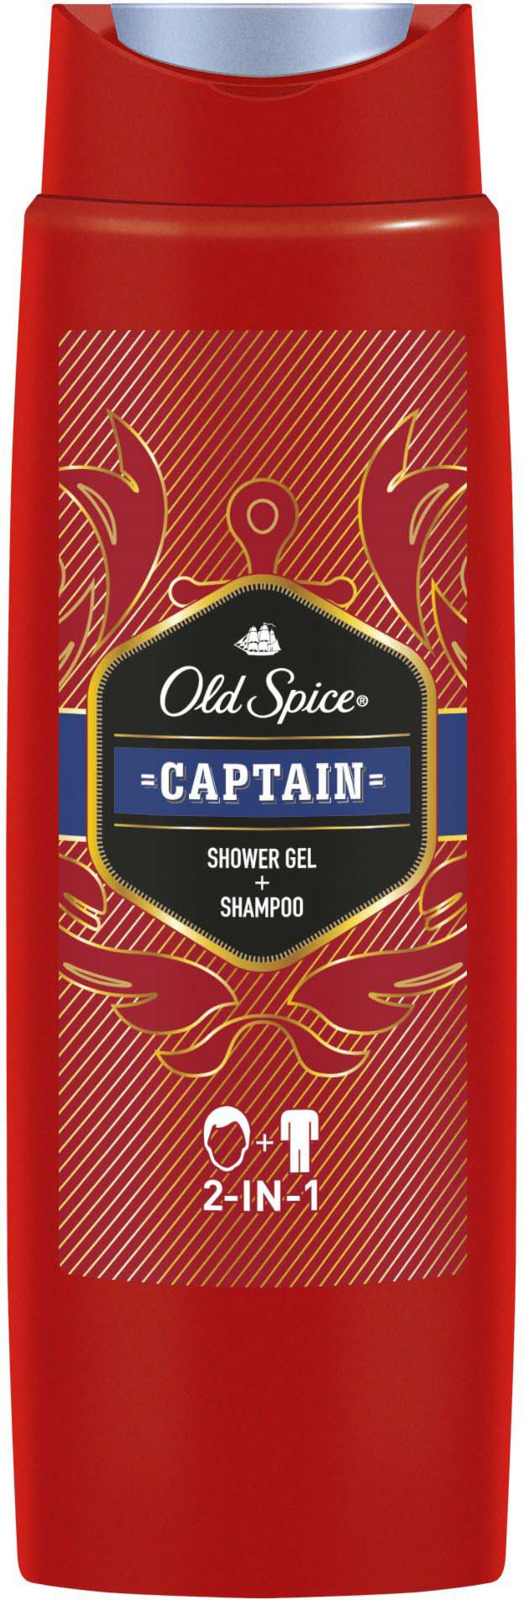 Гель для душа Old Spice Captain 2 в 1, 250 мл пена для бритья old spice